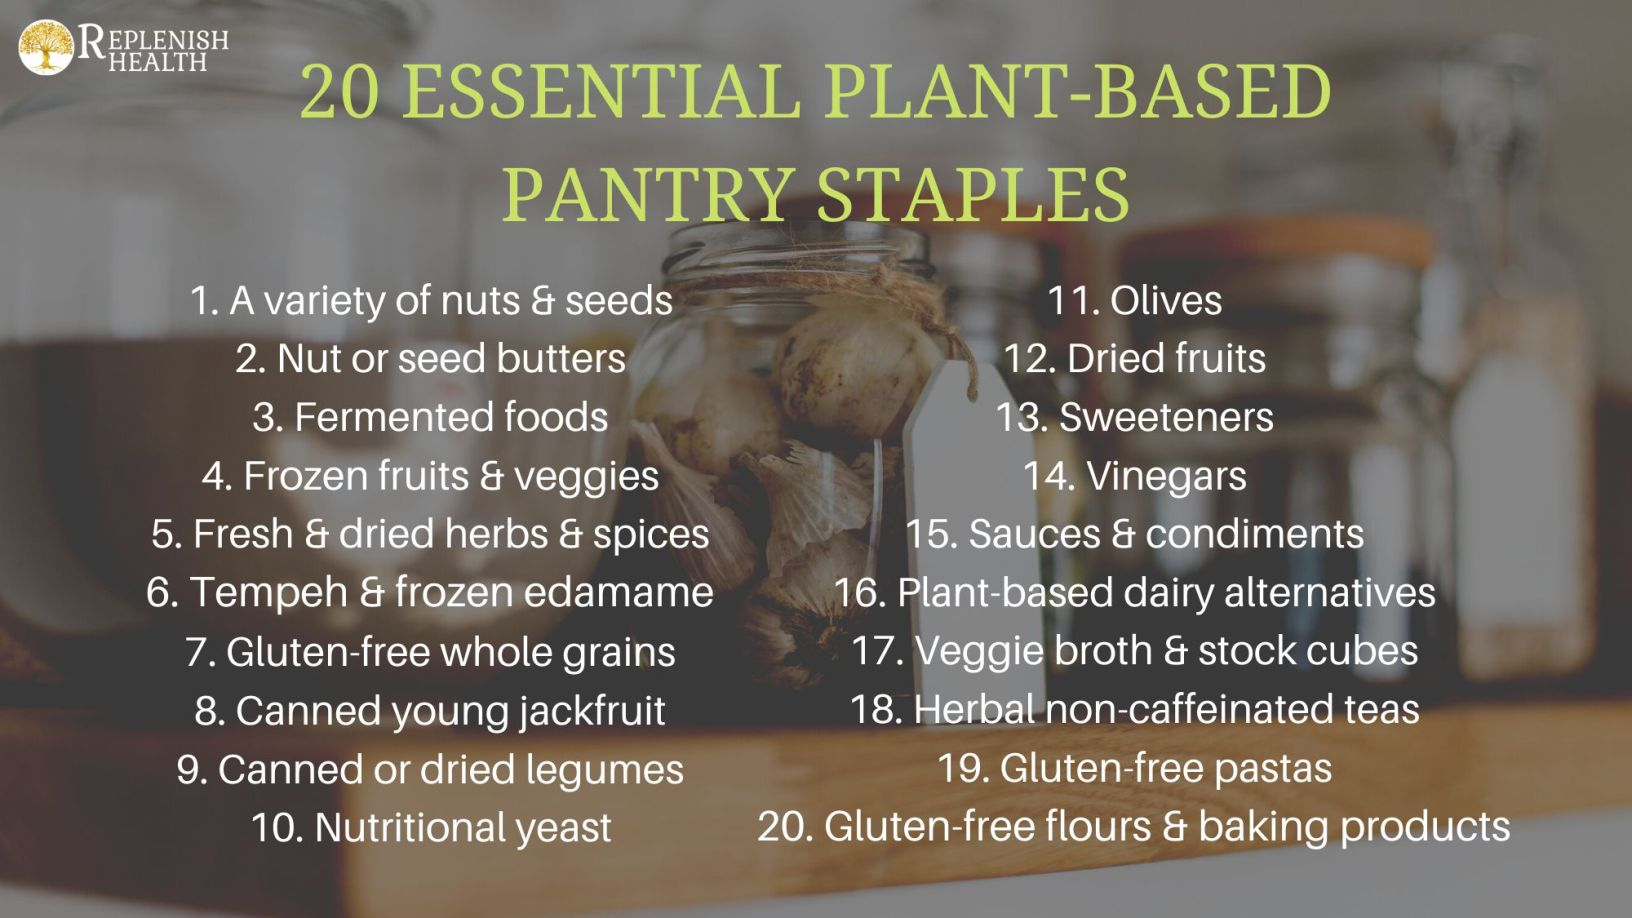 An image of 20 Essential Plant Based Pantry Staples